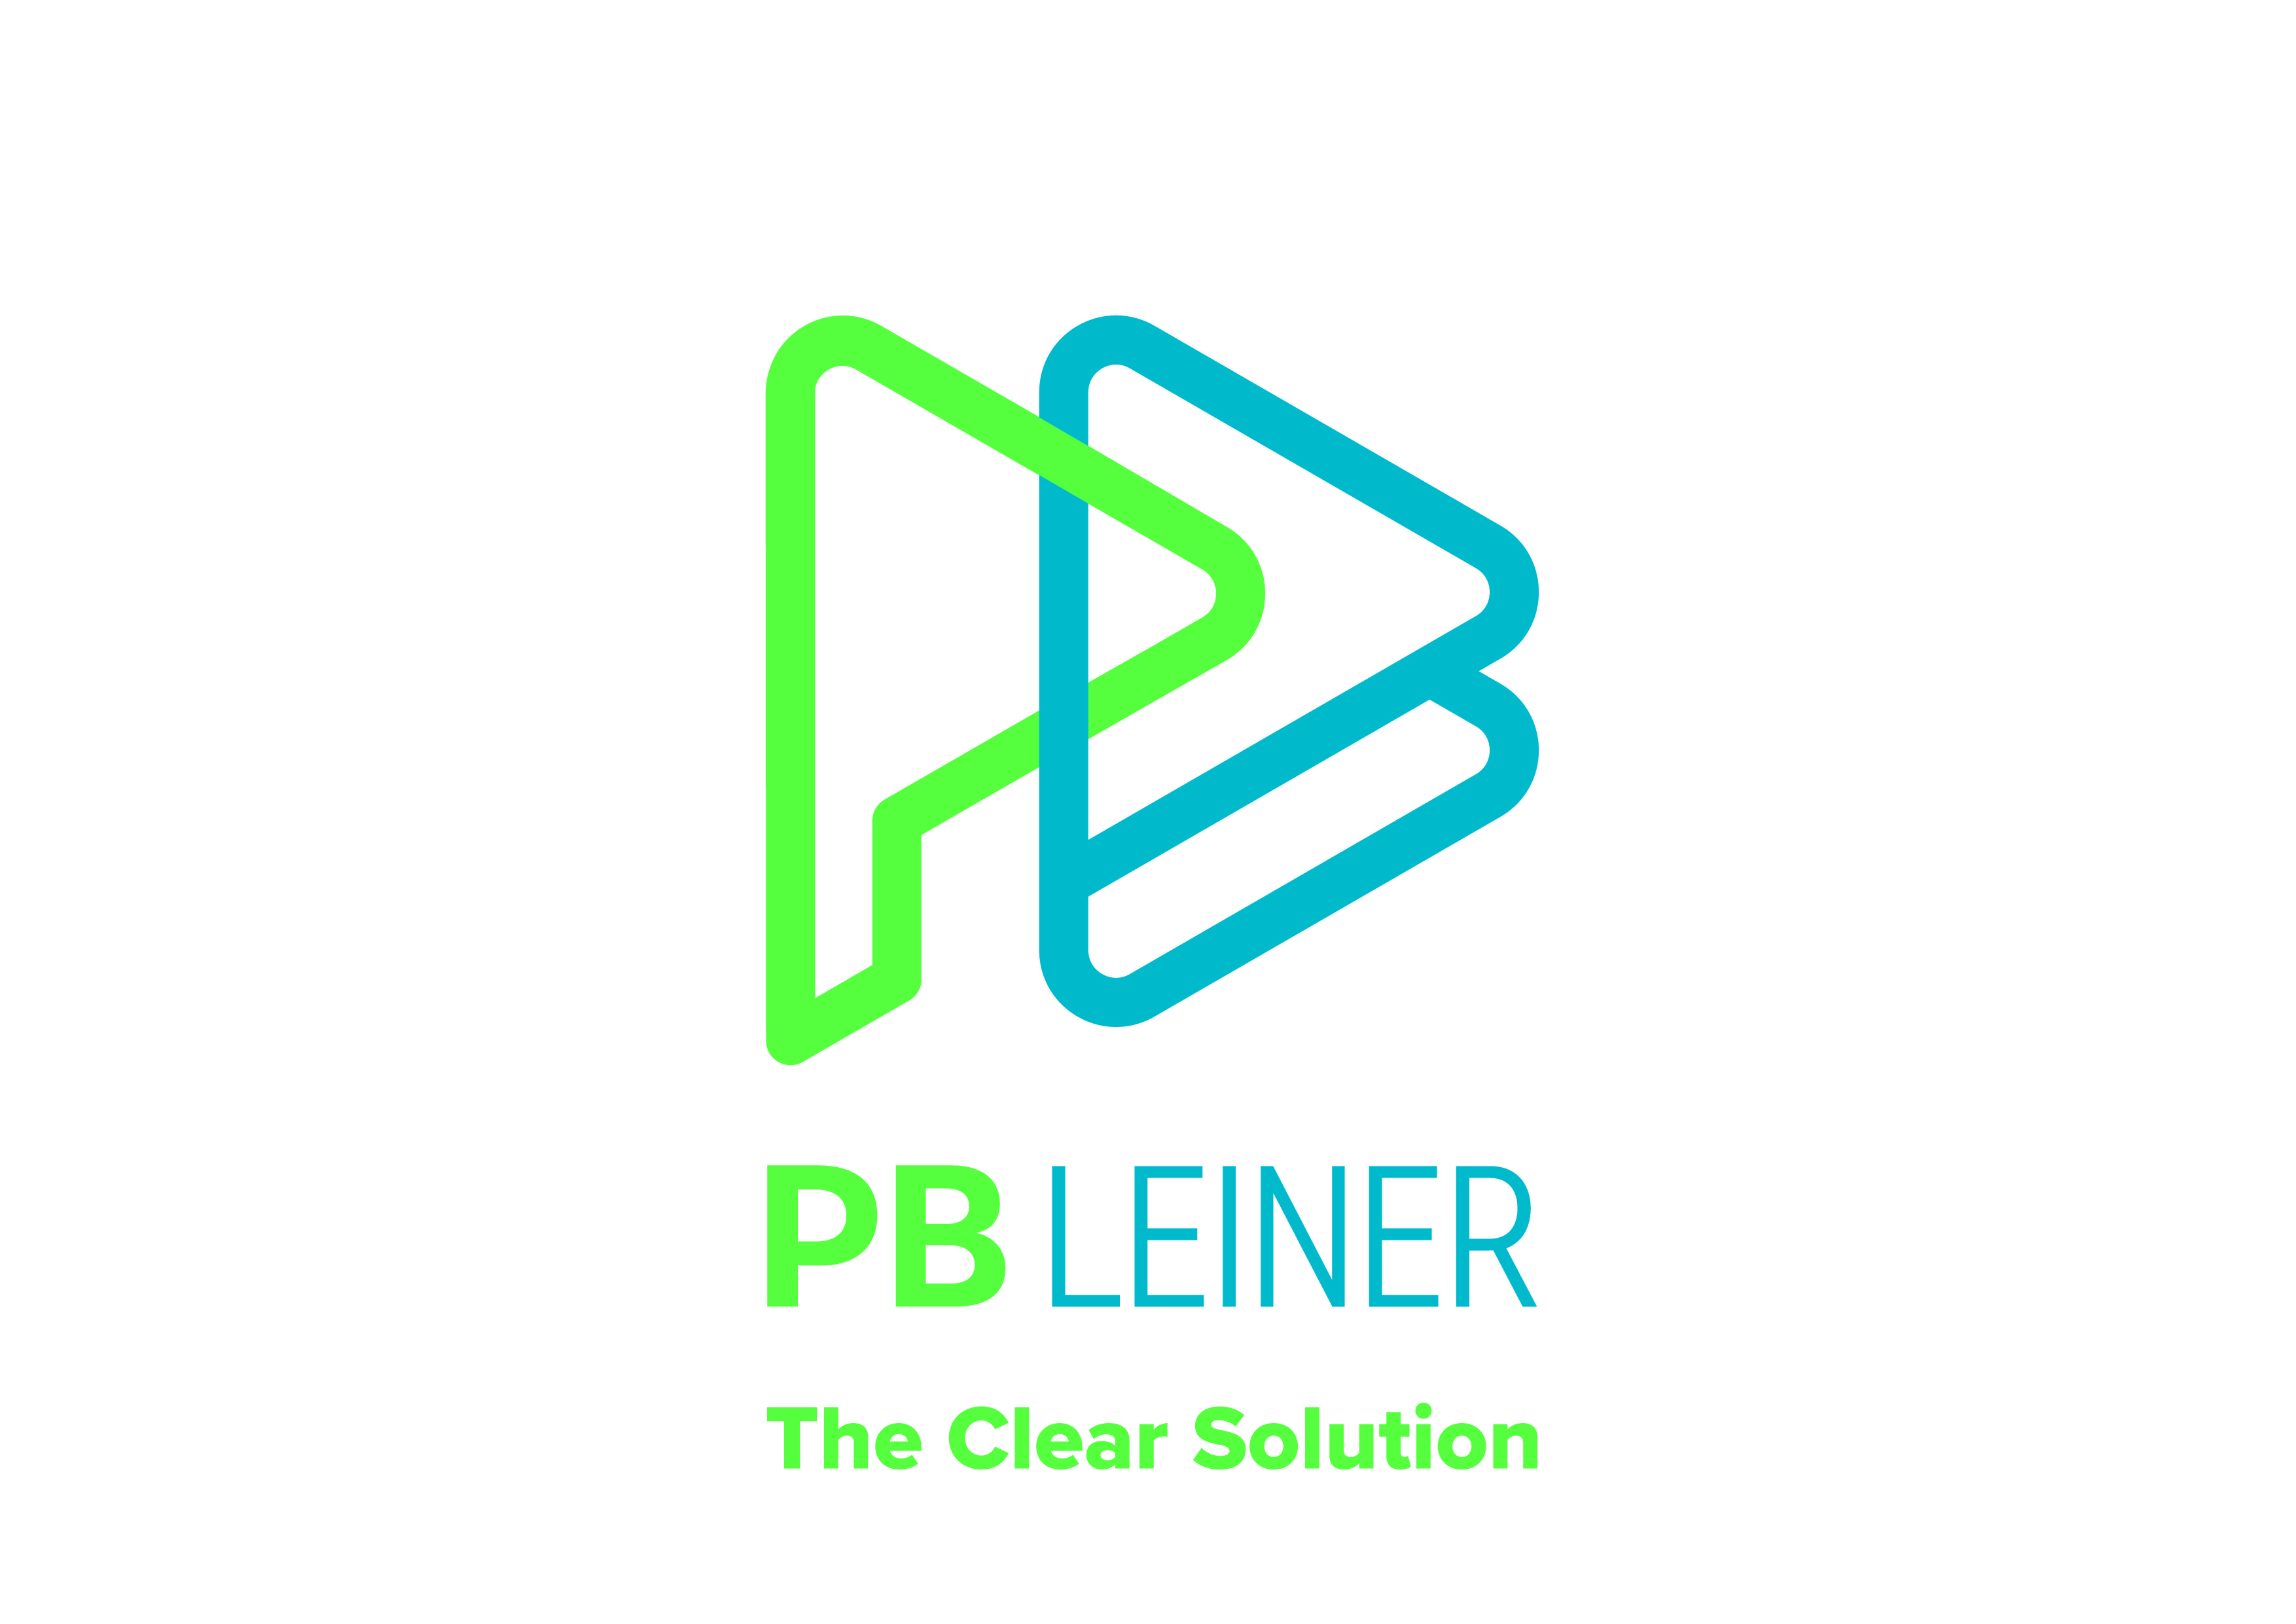 PB Leiner launches Textura® Tempo Ready, a new type of gelatin with unique properties